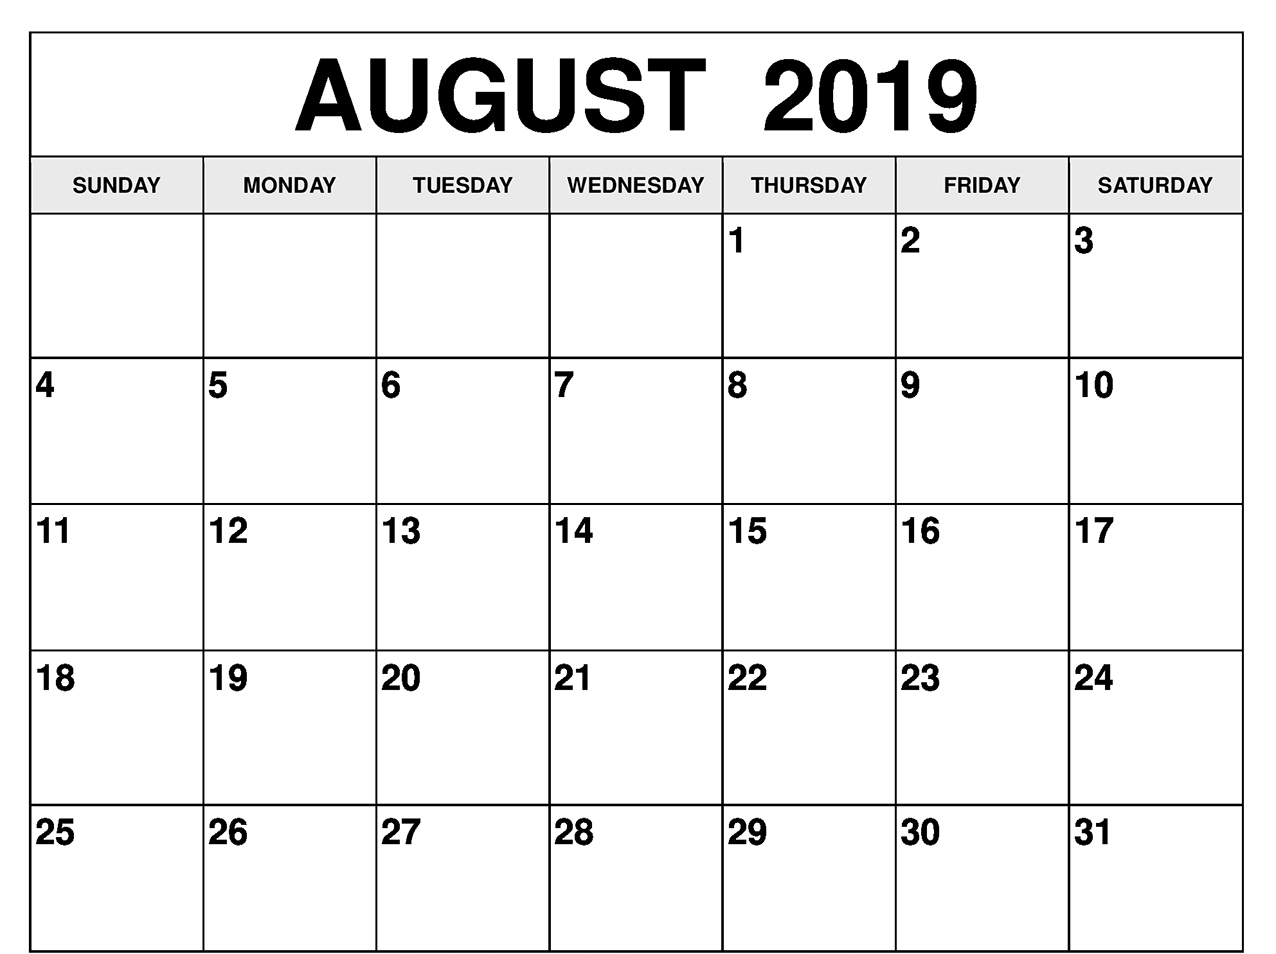 photograph about Free Printable Calendar August titled August 2019 Calendar Excel with Blank Printable Template